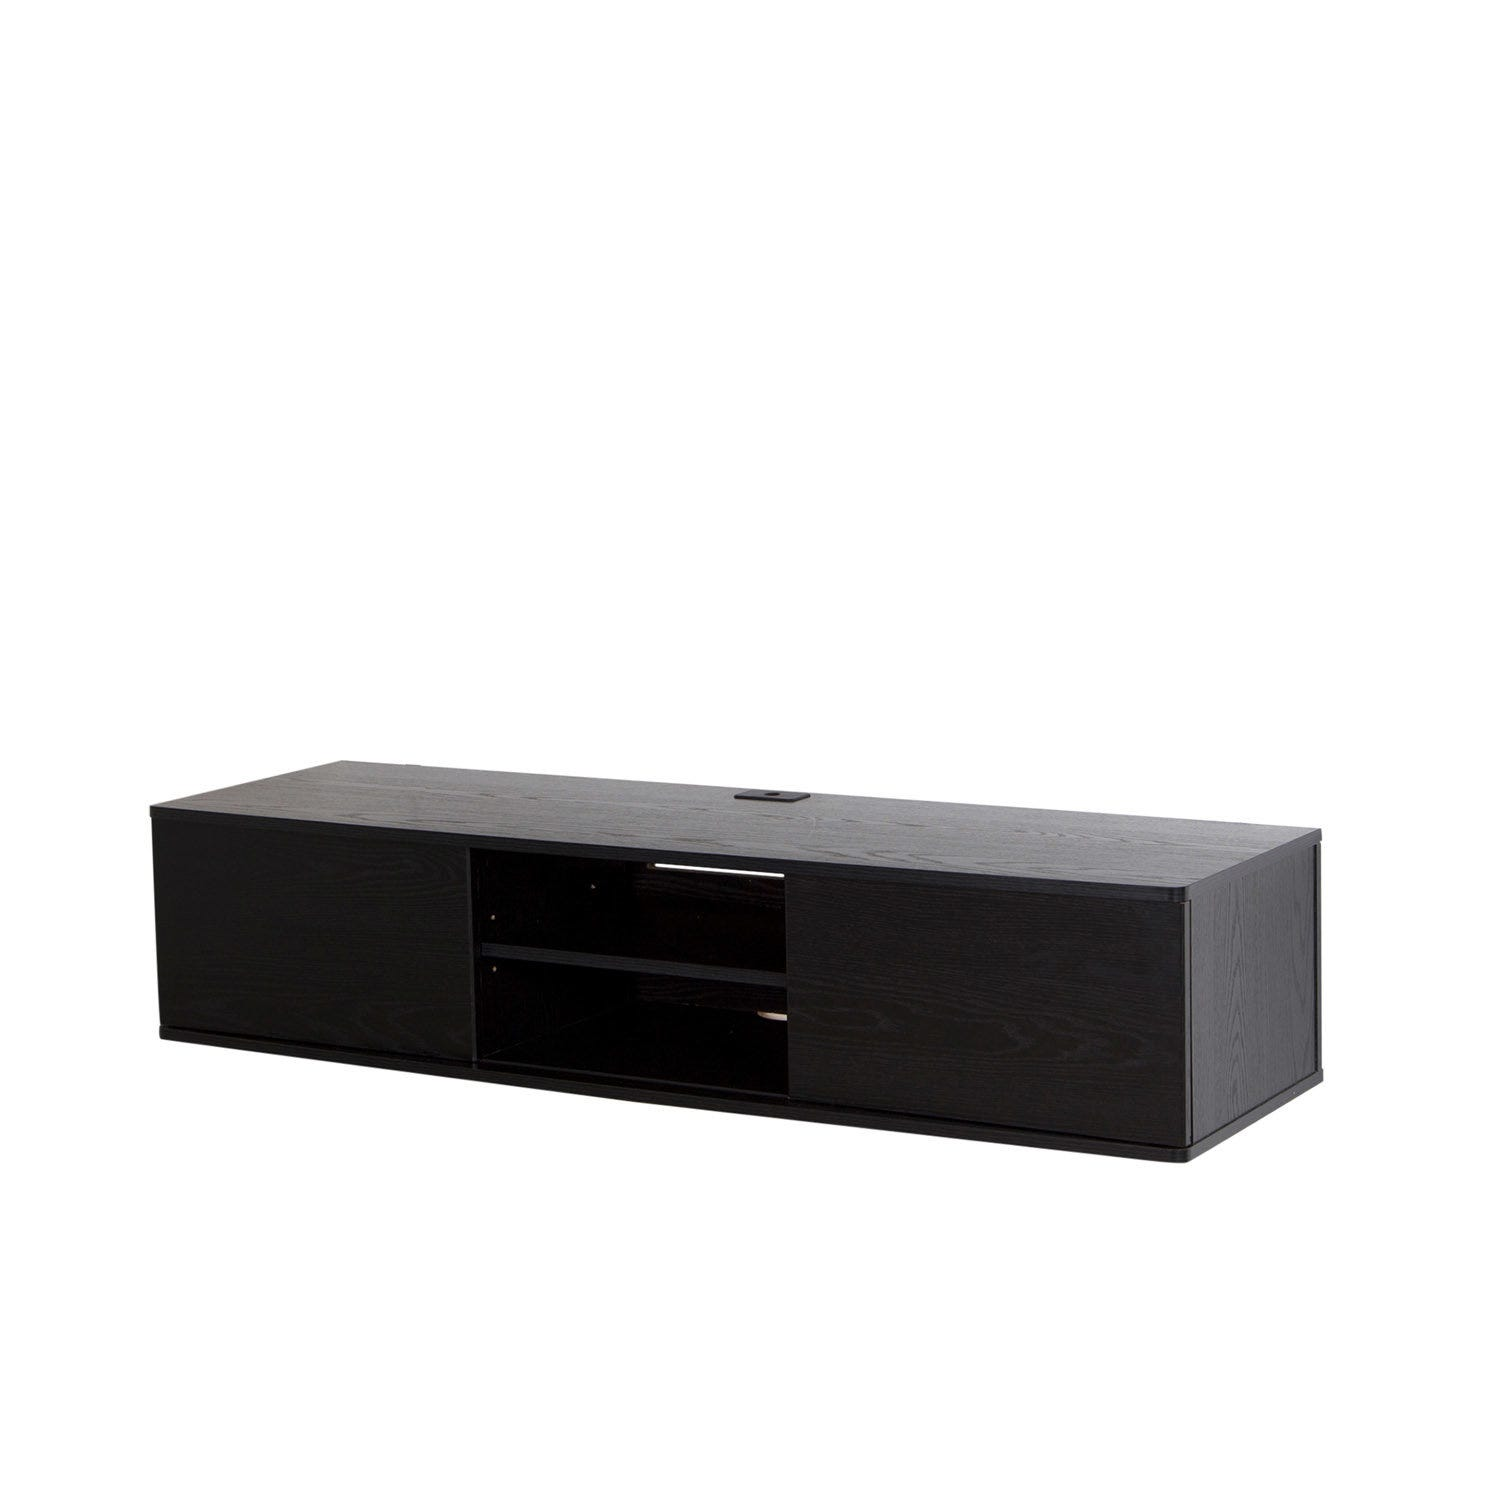 56 Wide Wall Mounted Media Console